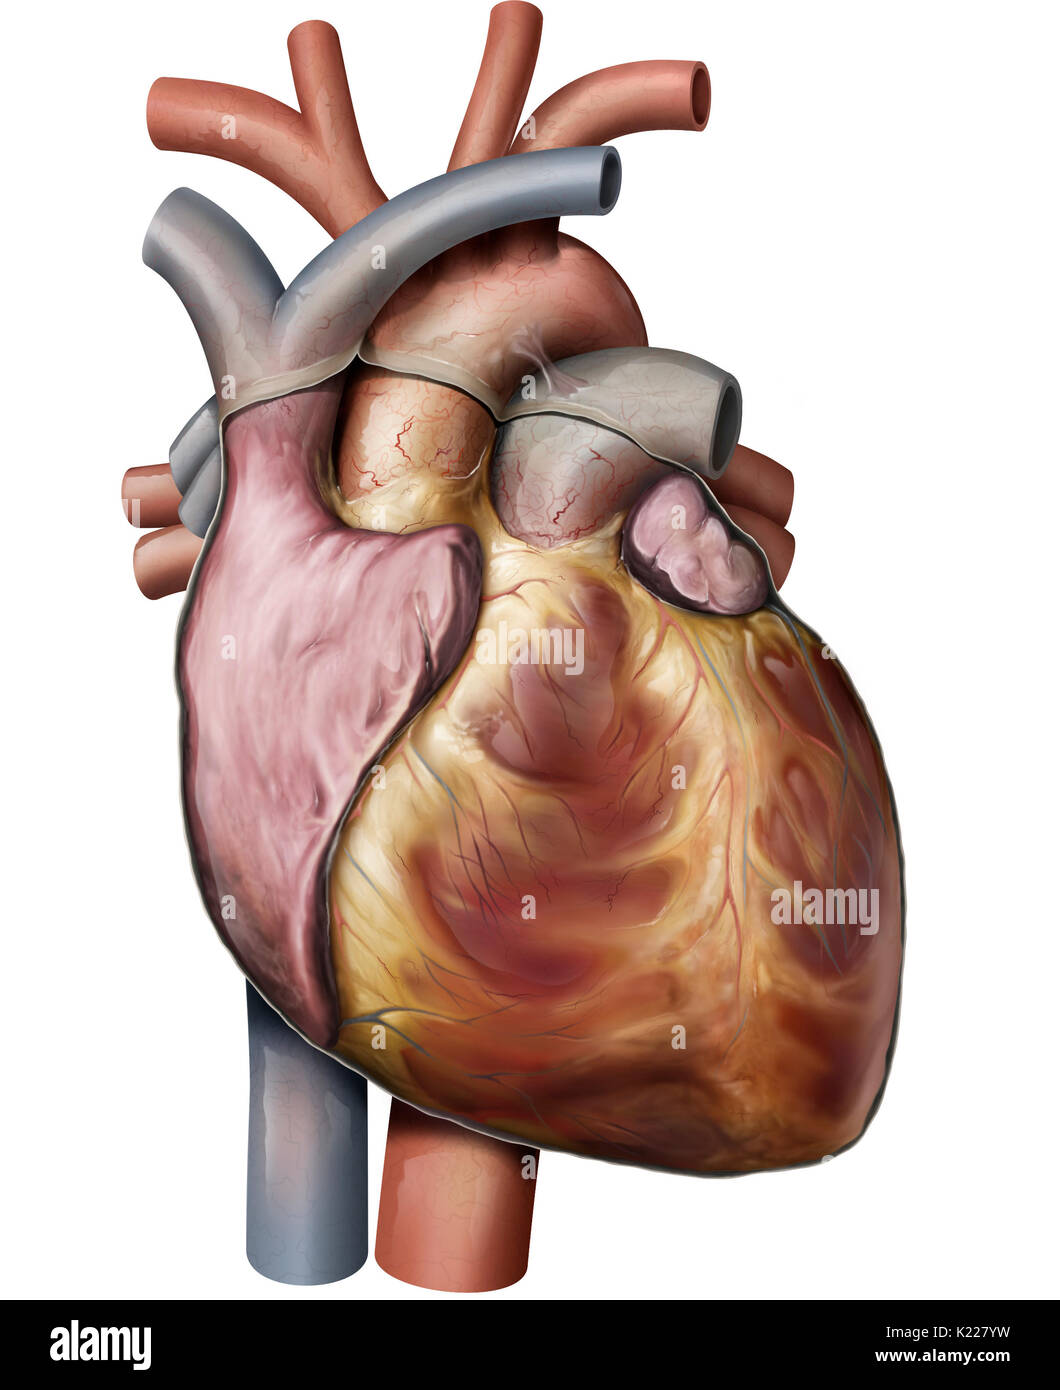 The heart is a muscular organ made up of four chambers; its regular rhythmic contractions pump and circulate blood. - Stock Image